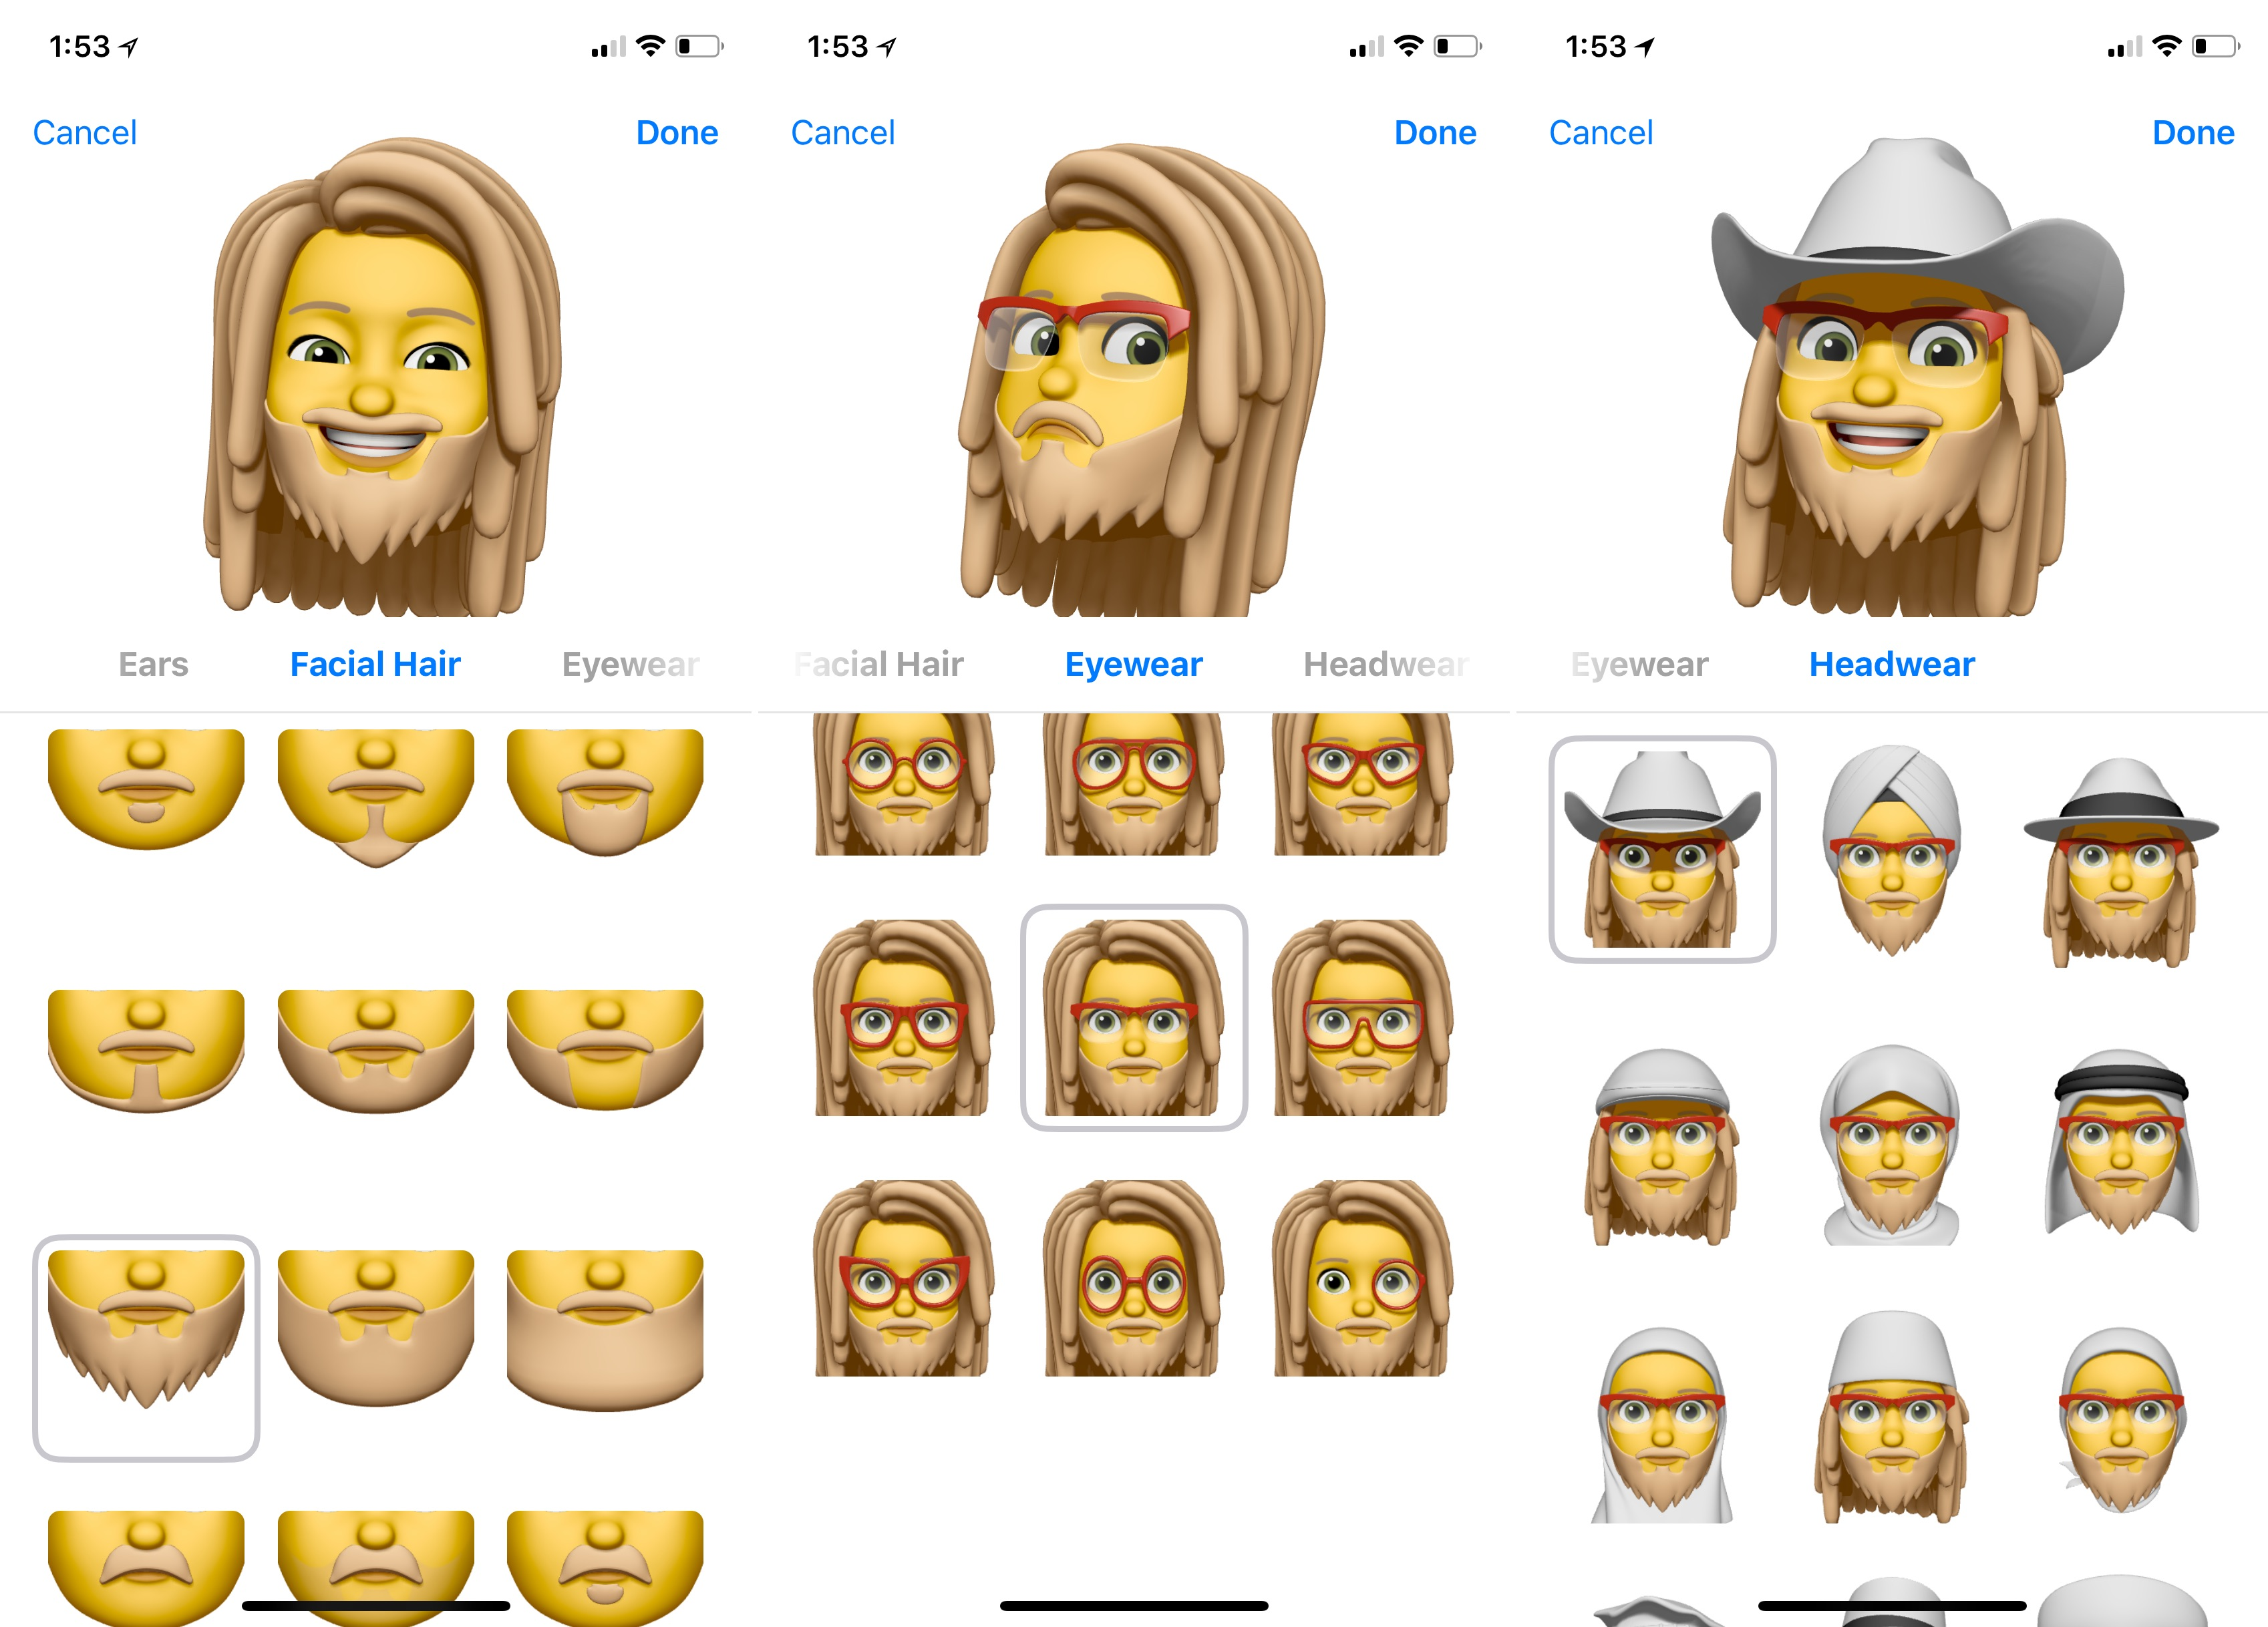 How to create, edit & use Memoji and put a smile on